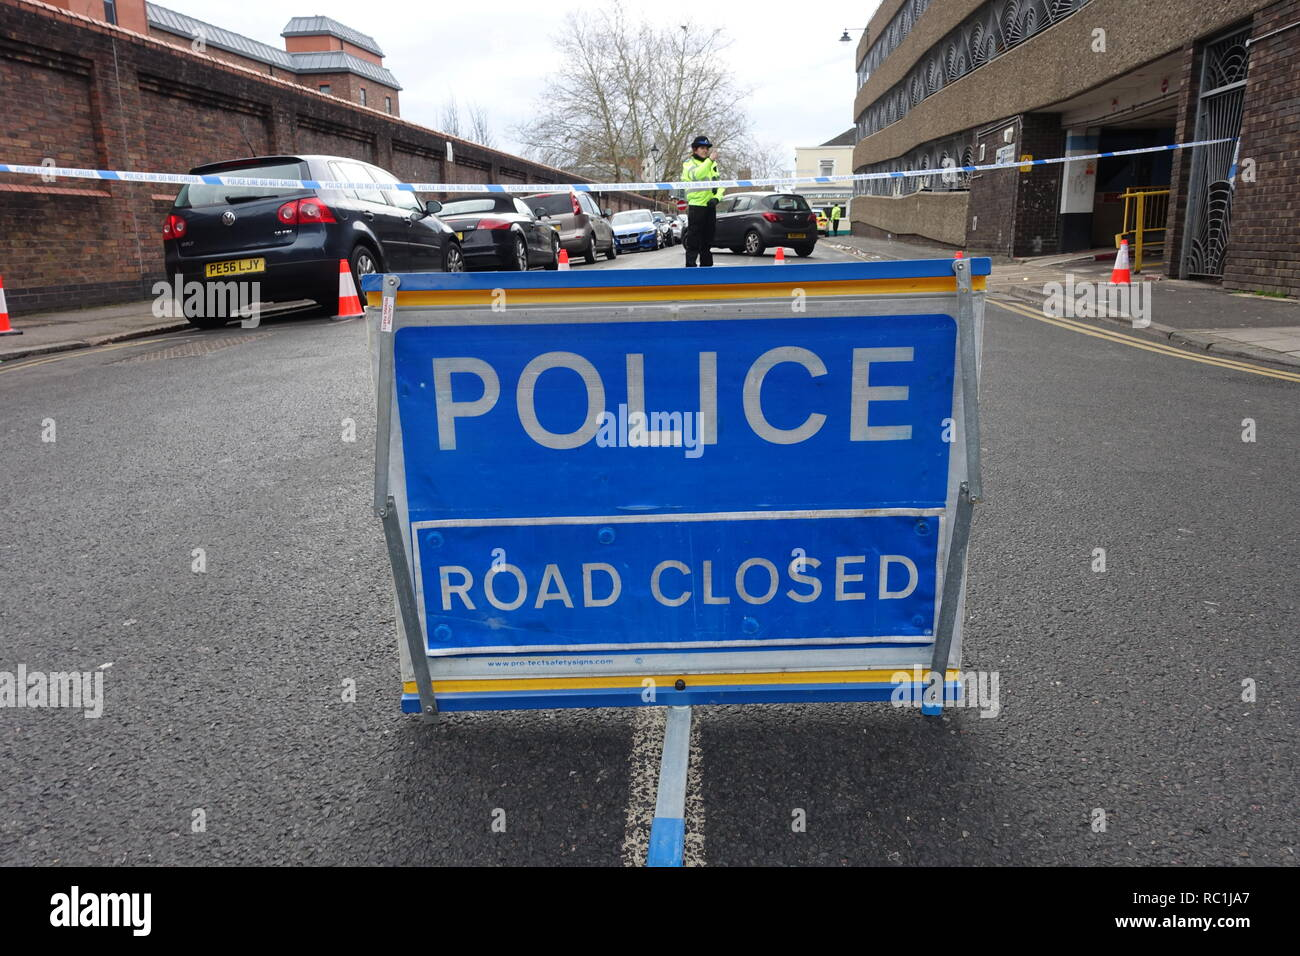 Windsor, UK. 13th January 2019. A road closure outside Victoria Street car park in Windsor due to a police incident. Matthew Ashmore/Alamy Live News Stock Photo